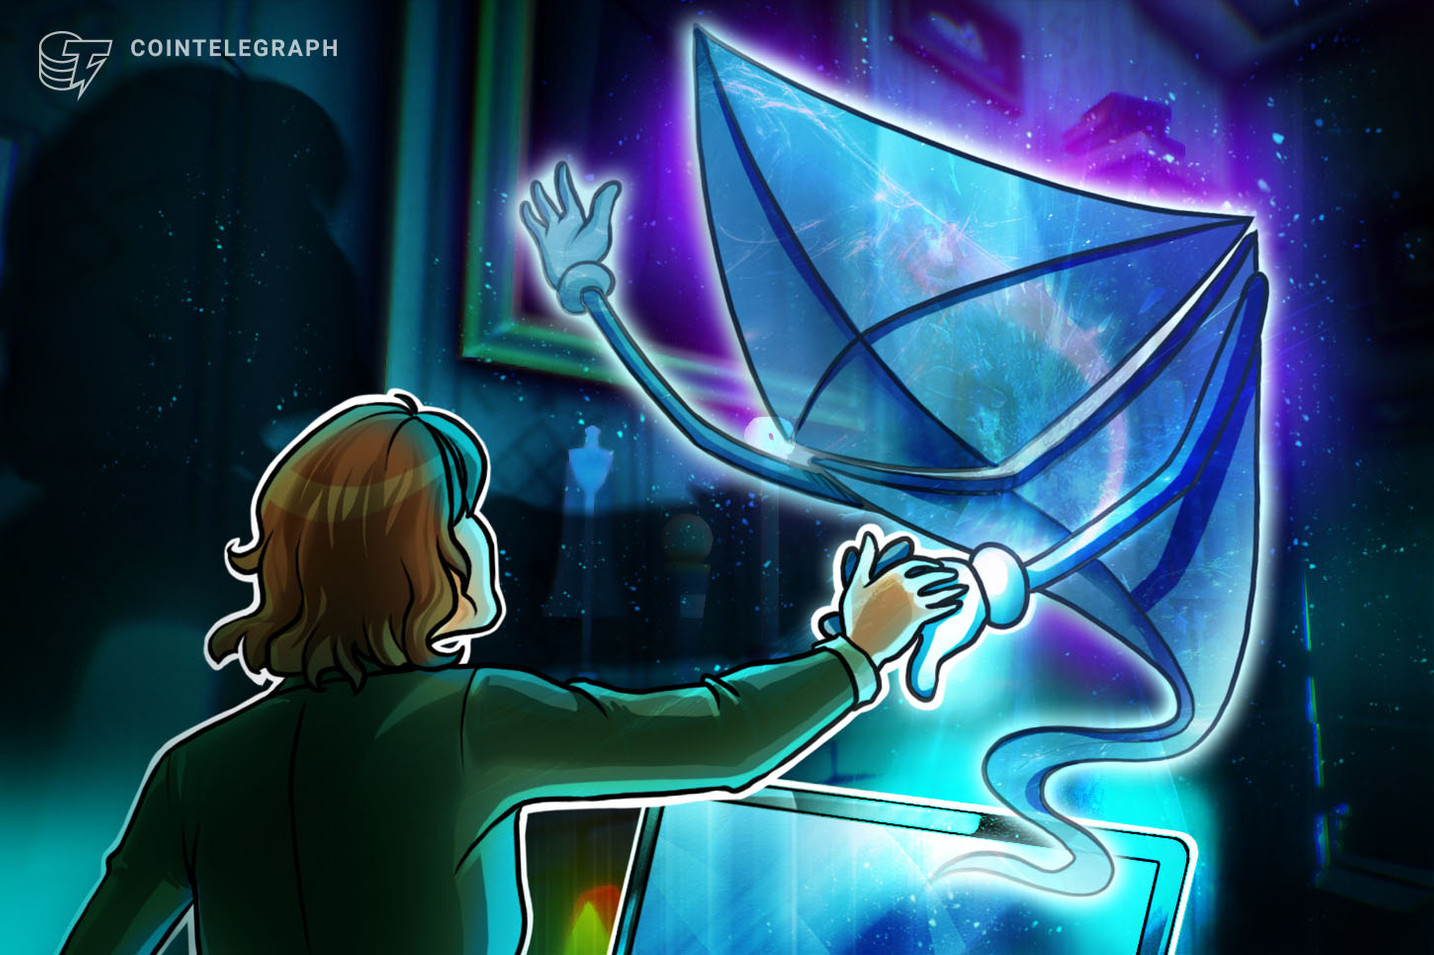 MEW Founder: 'The Full Reality of ETH 2.0 Is Still Years Away'